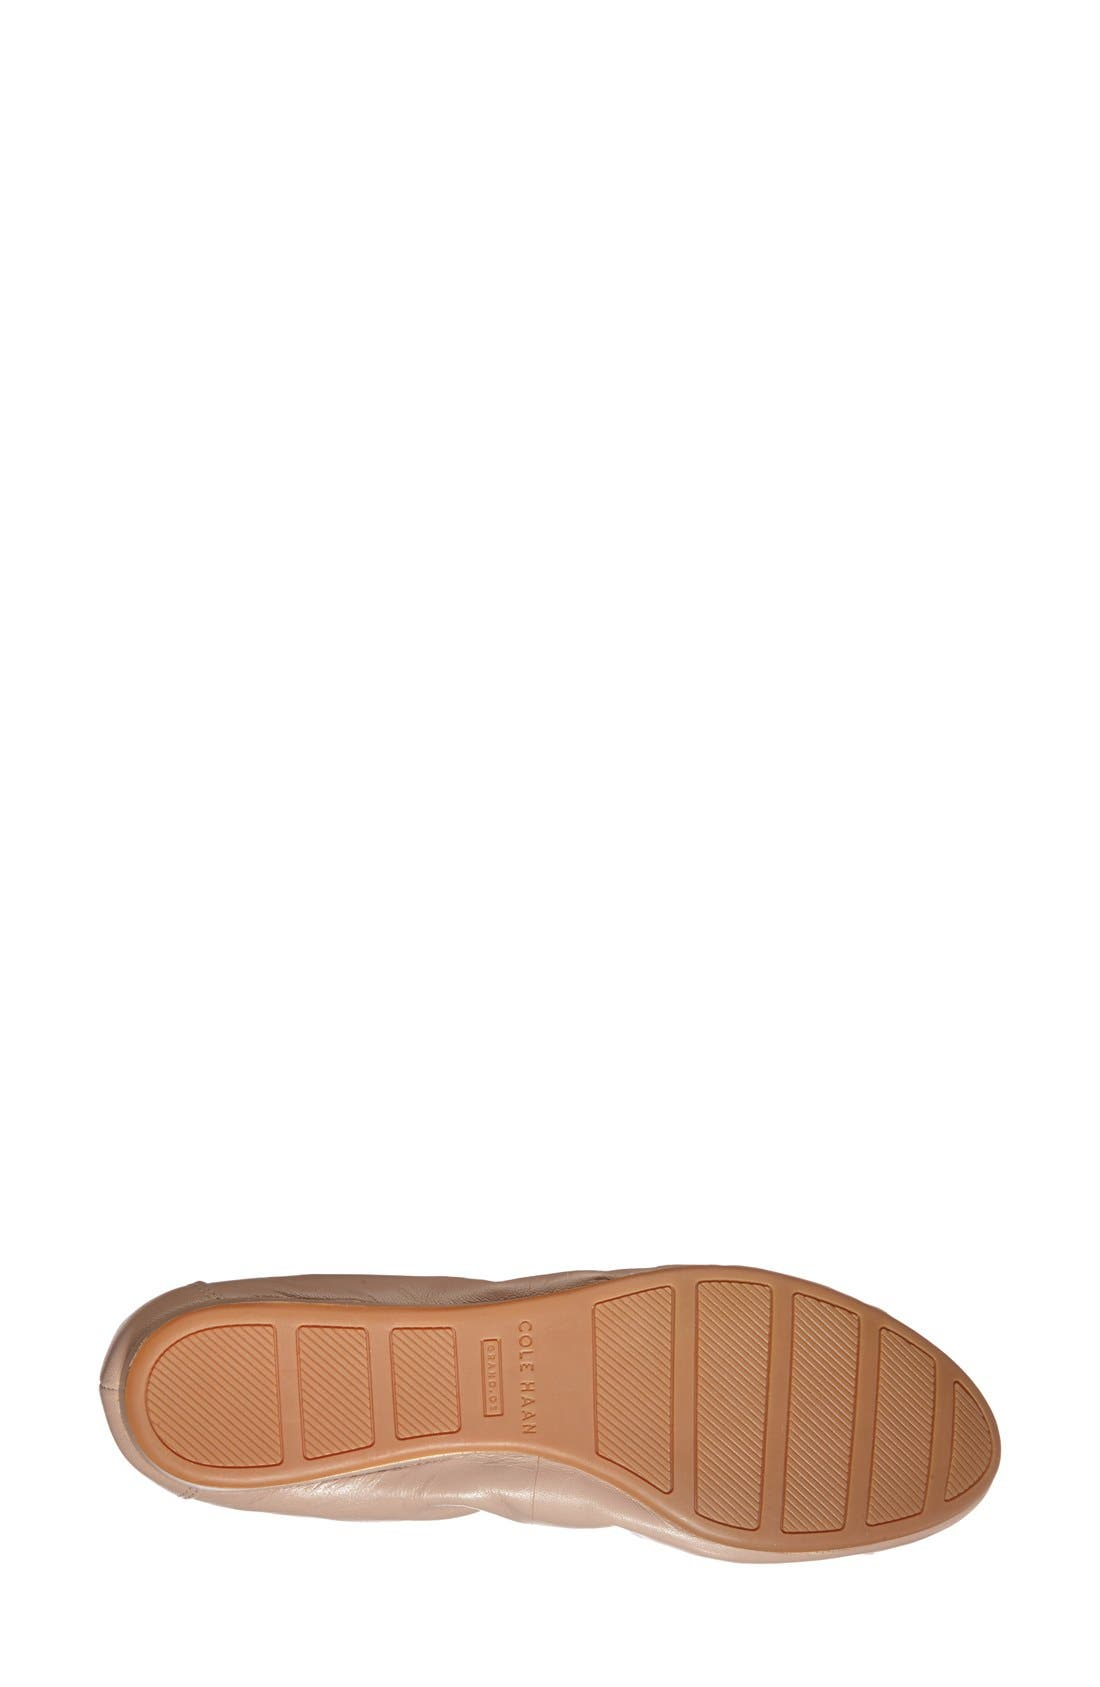 COLE HAAN, 'Tali' Bow Ballet Flat, Alternate thumbnail 4, color, MAPLE SUGAR